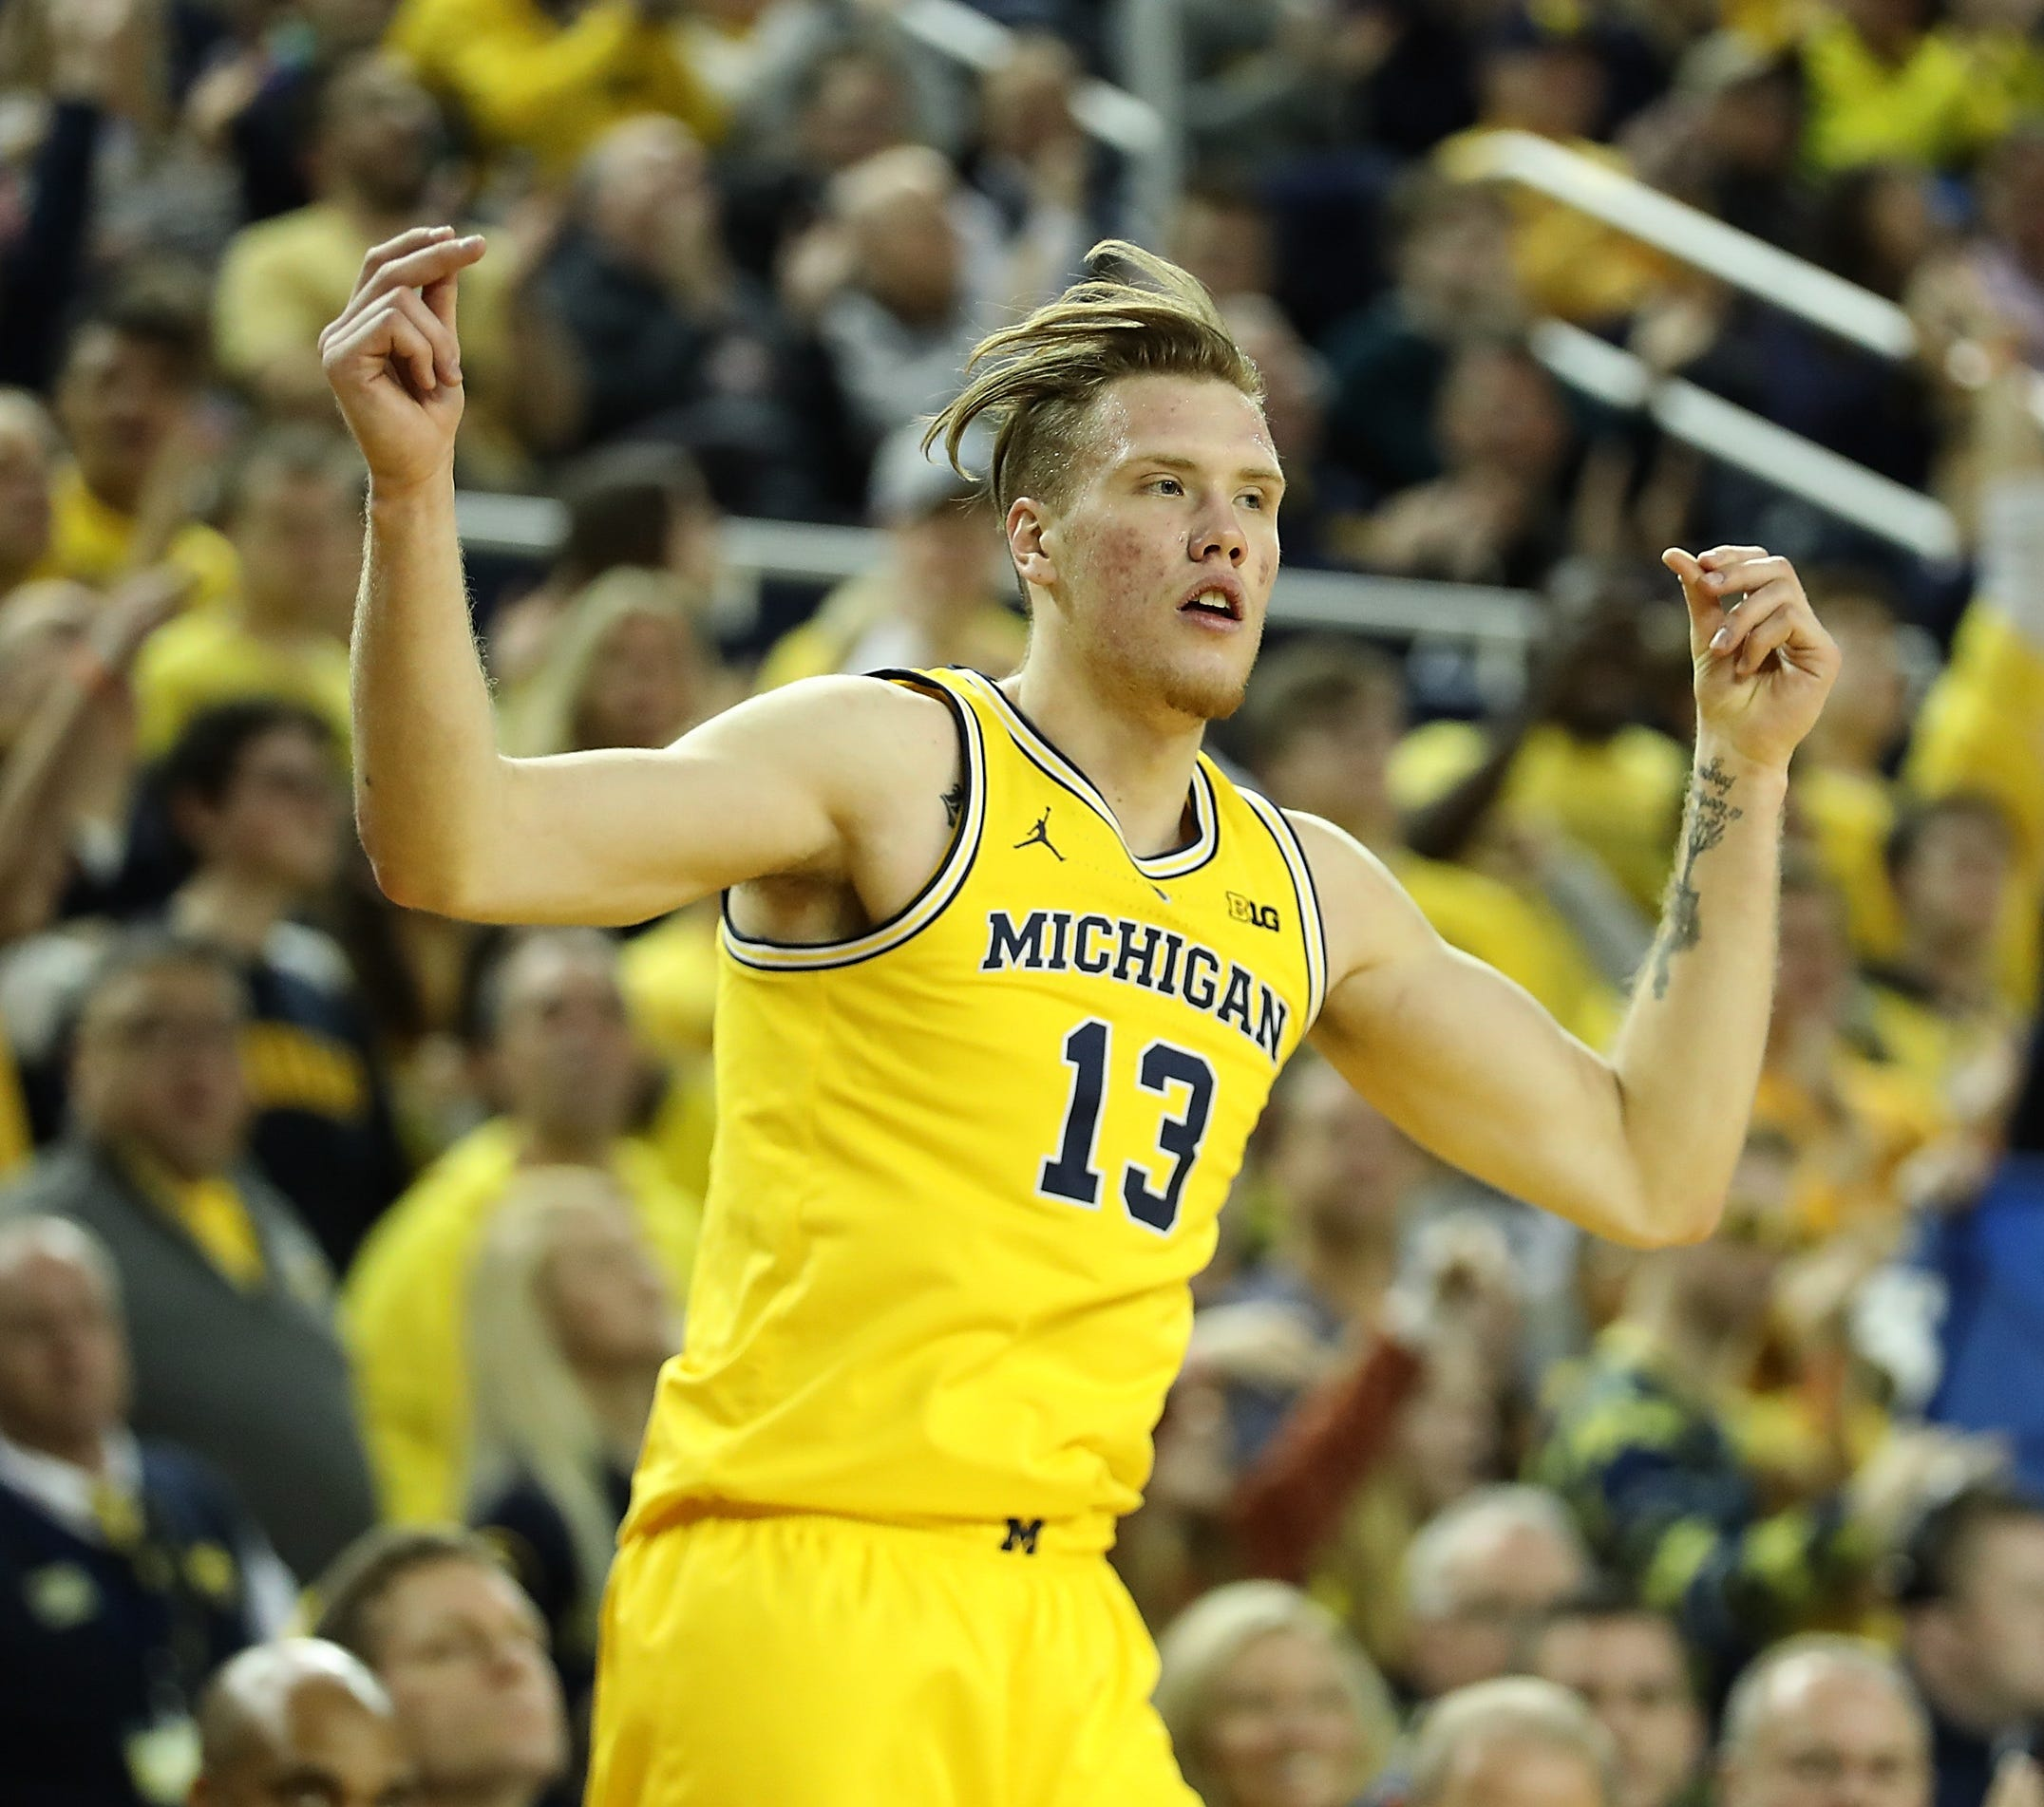 Michigan forward Ignas Brazdeikis celebrates a 3-point shot during the second half of U-M's 71-50 win on Saturday, Dec. 22, 2018, at Crisler Center.